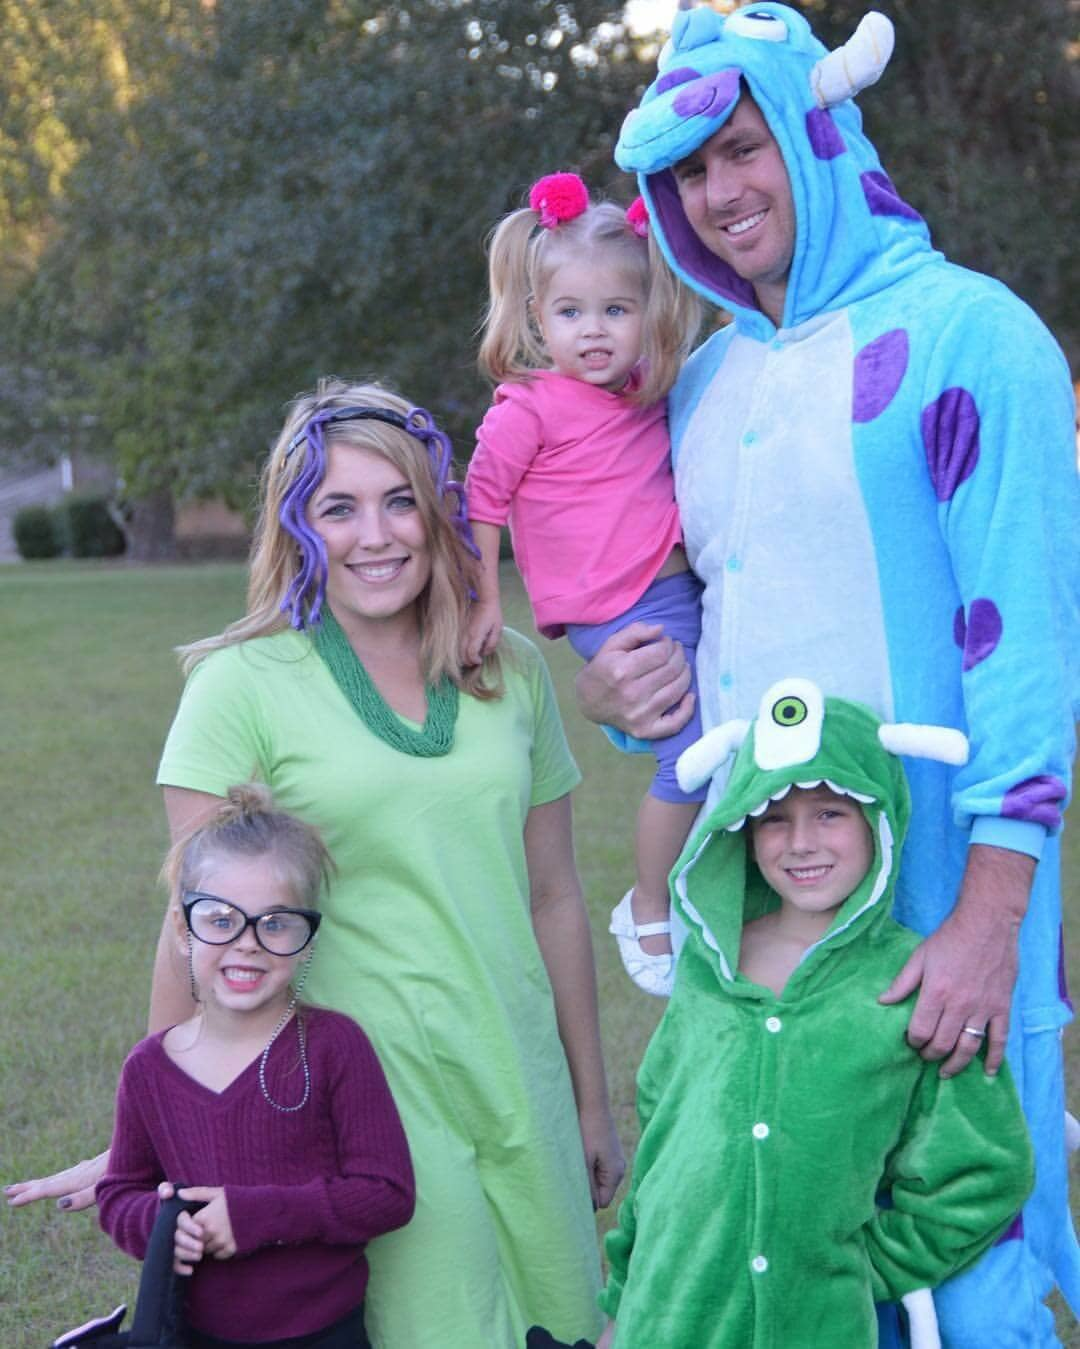 Monsters Inc Halloween Costumes for the Whole Family!